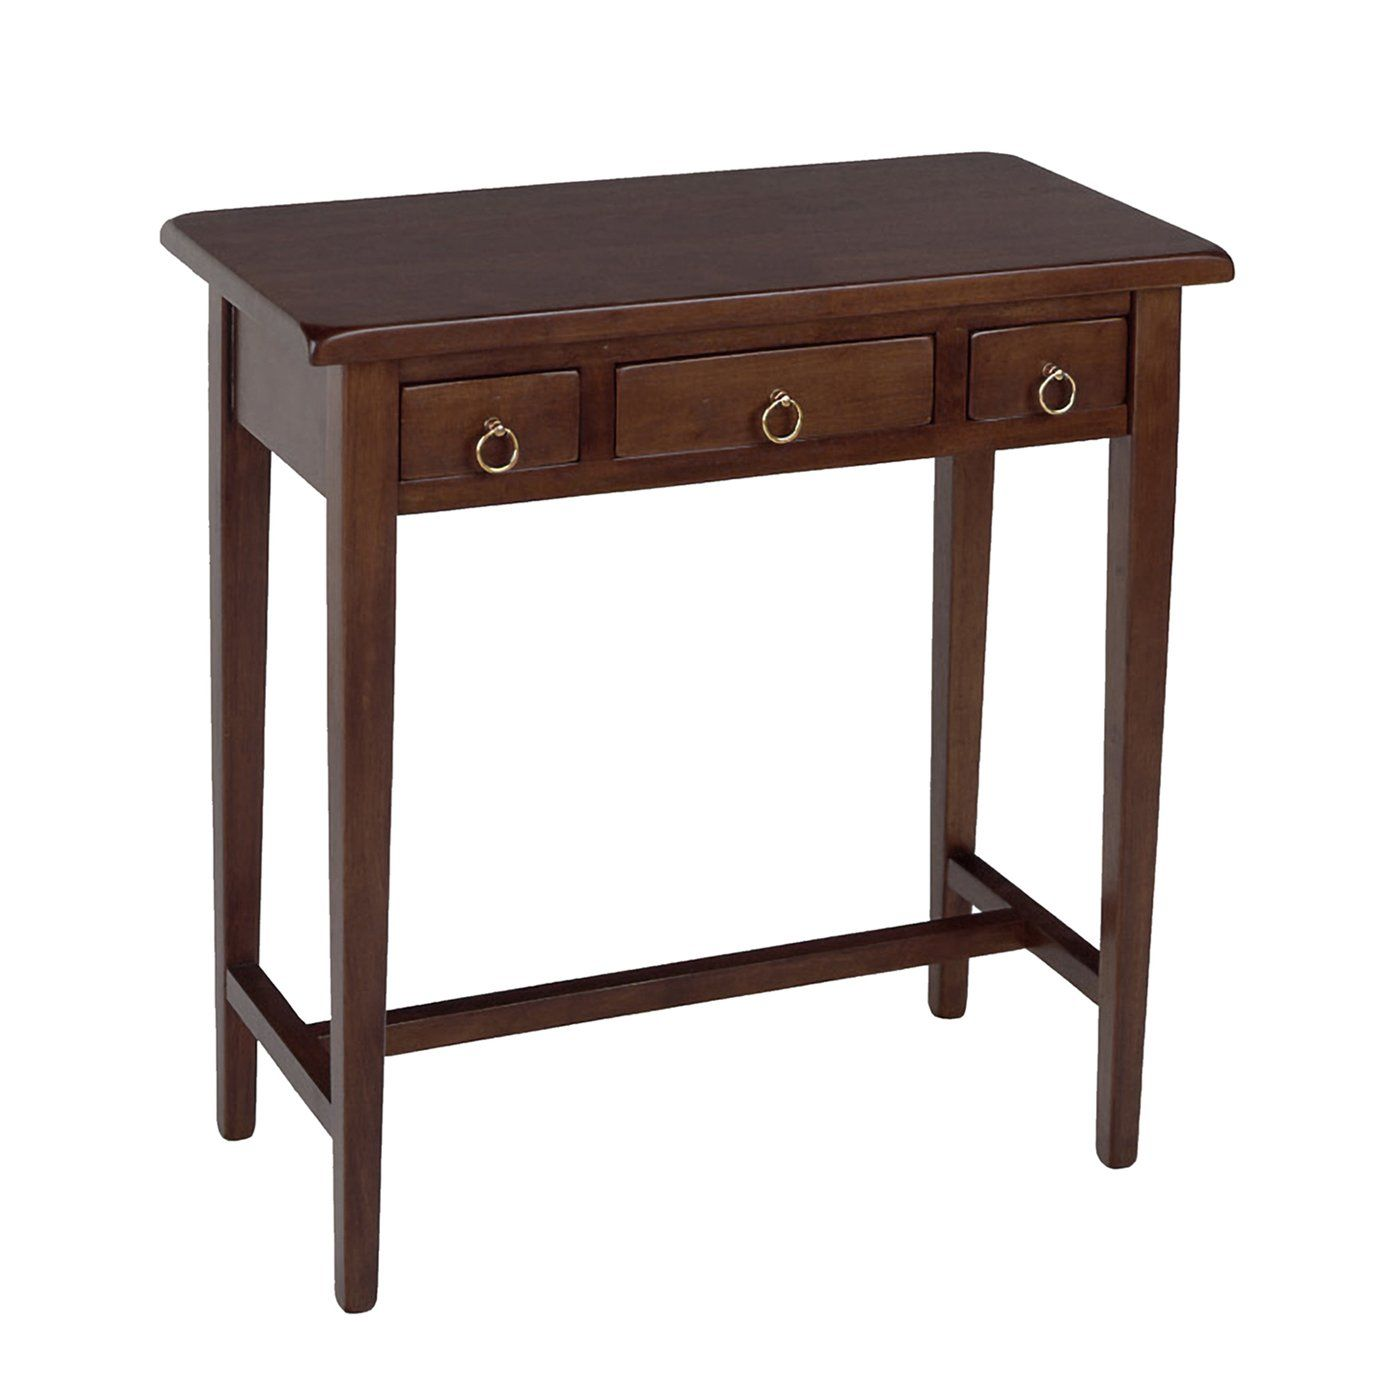 Shop winsome wood 94329 regalia hall entry table at lowes canada shop winsome wood 94329 regalia hall entry table at lowes canada find our selection of sofa tables at the lowest price guaranteed with price match off watchthetrailerfo